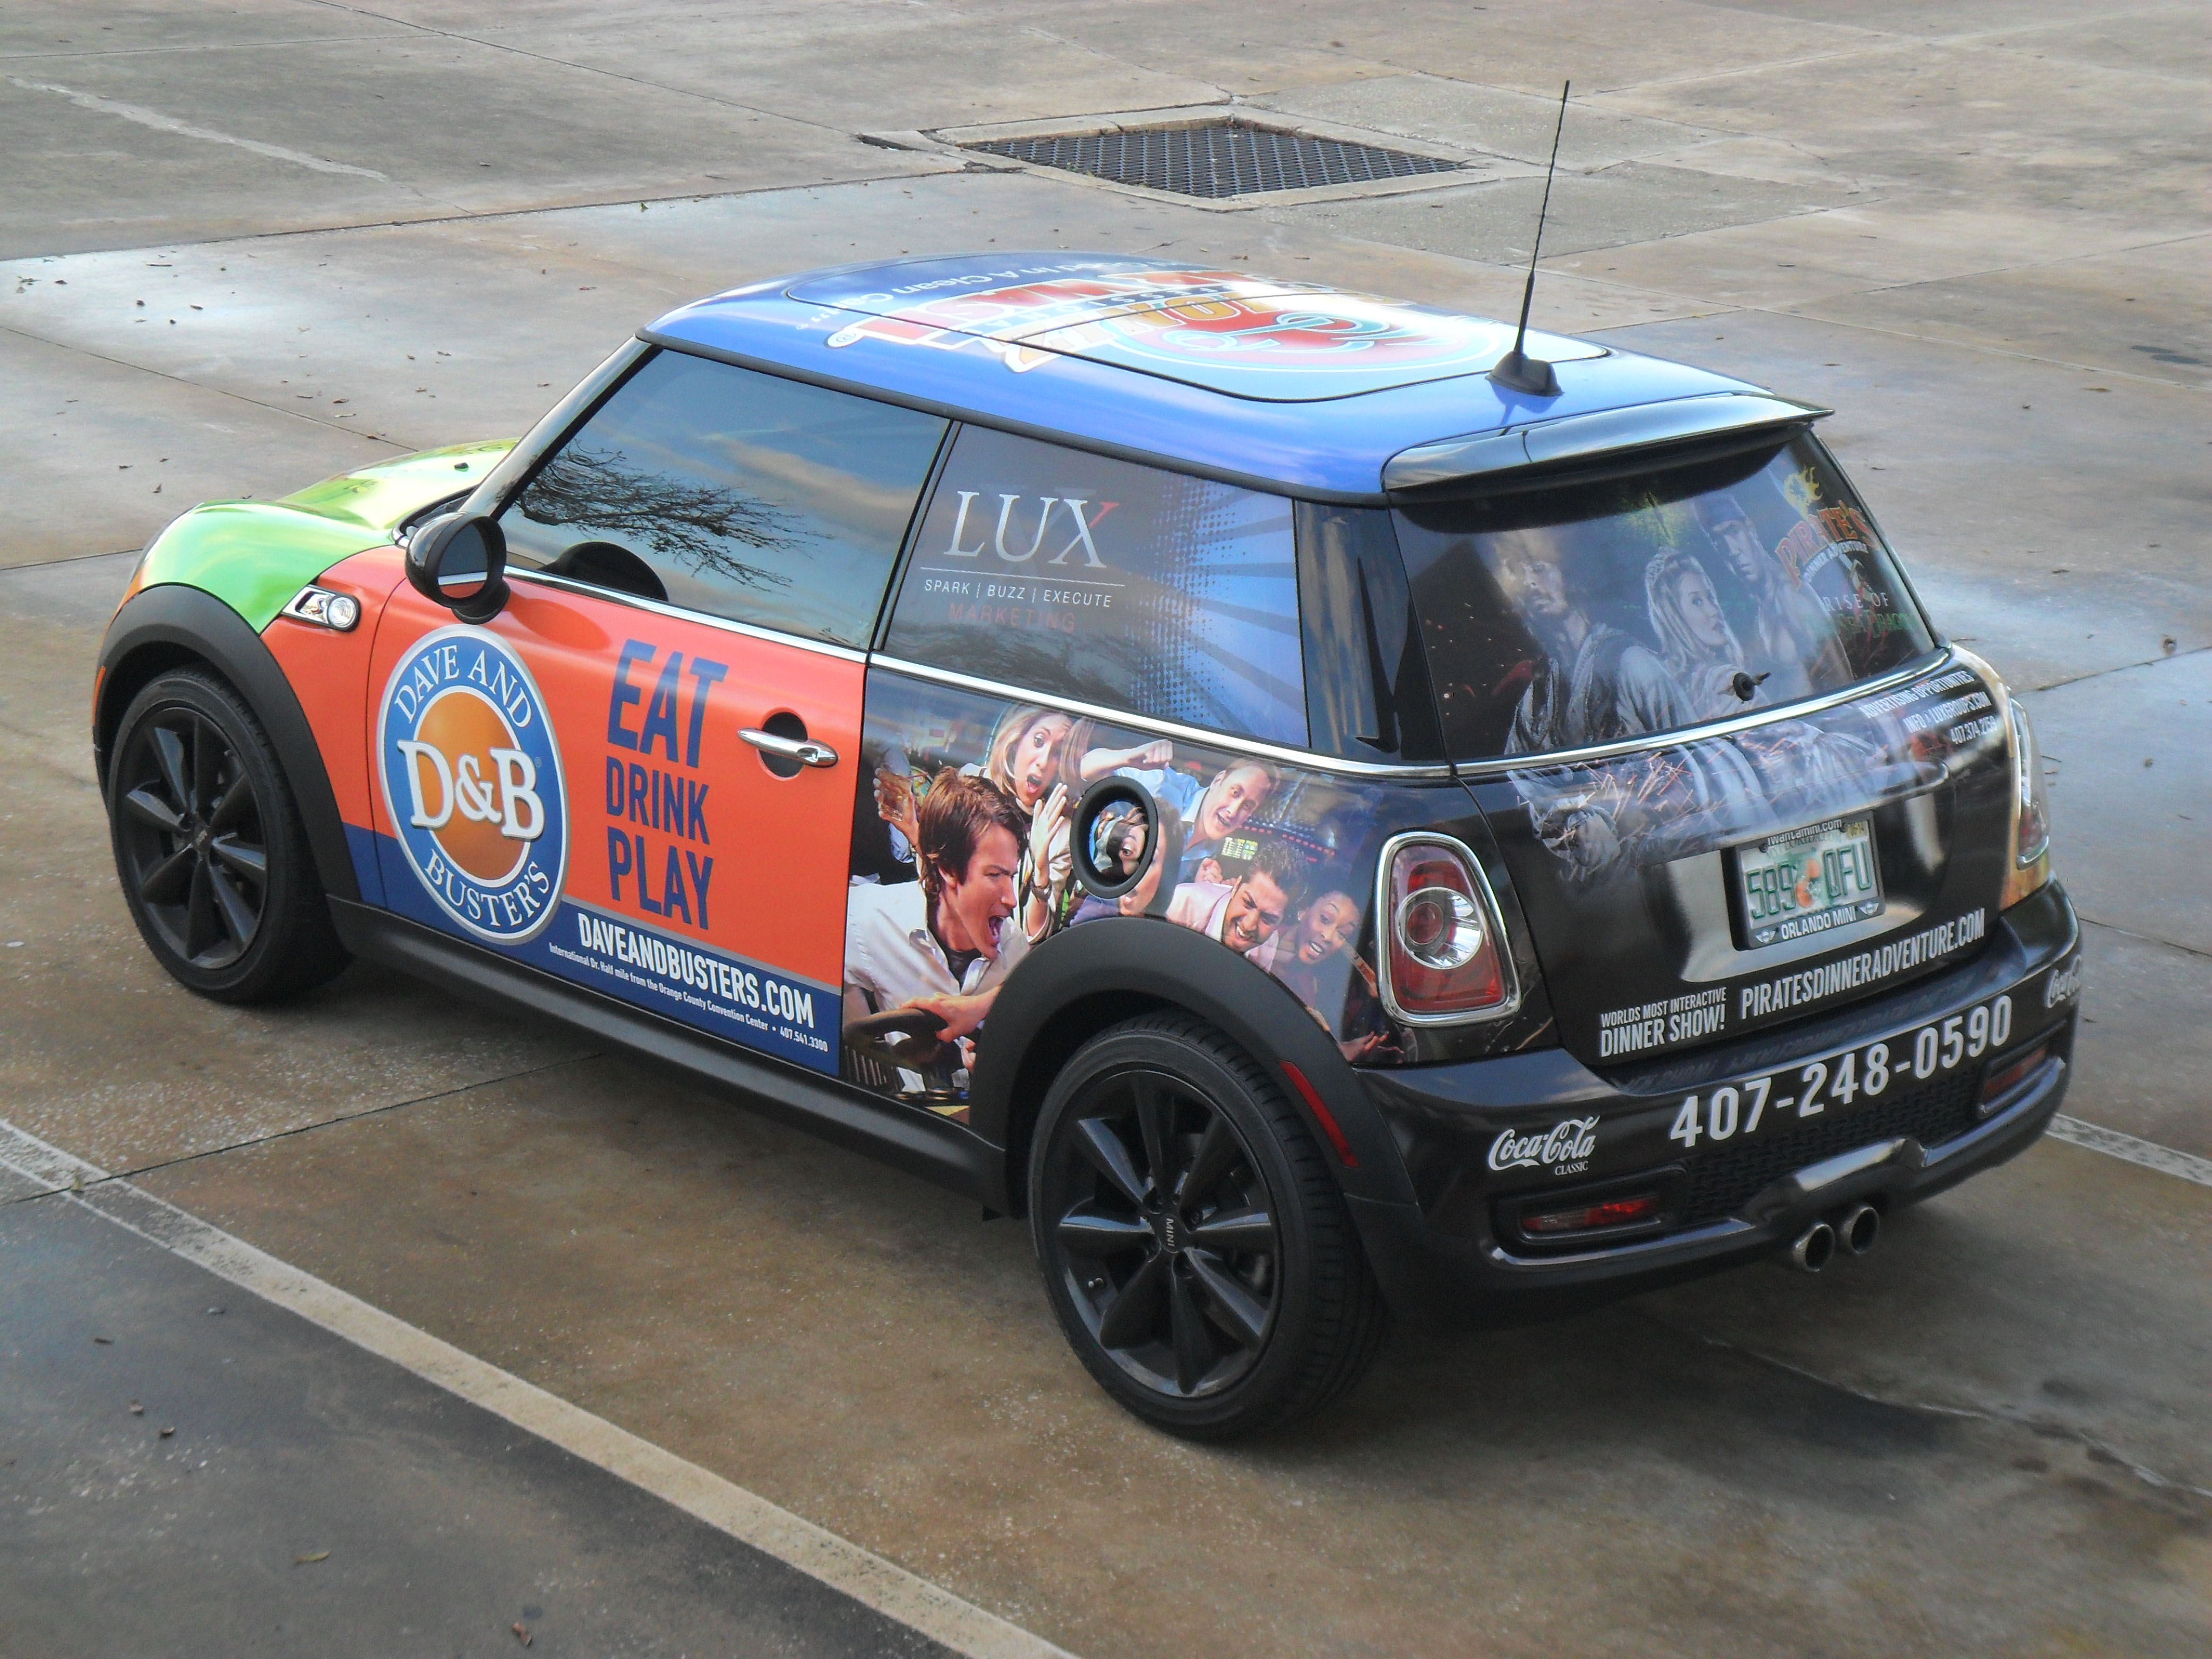 sponsorship marketing used on mini for Dave and Busters